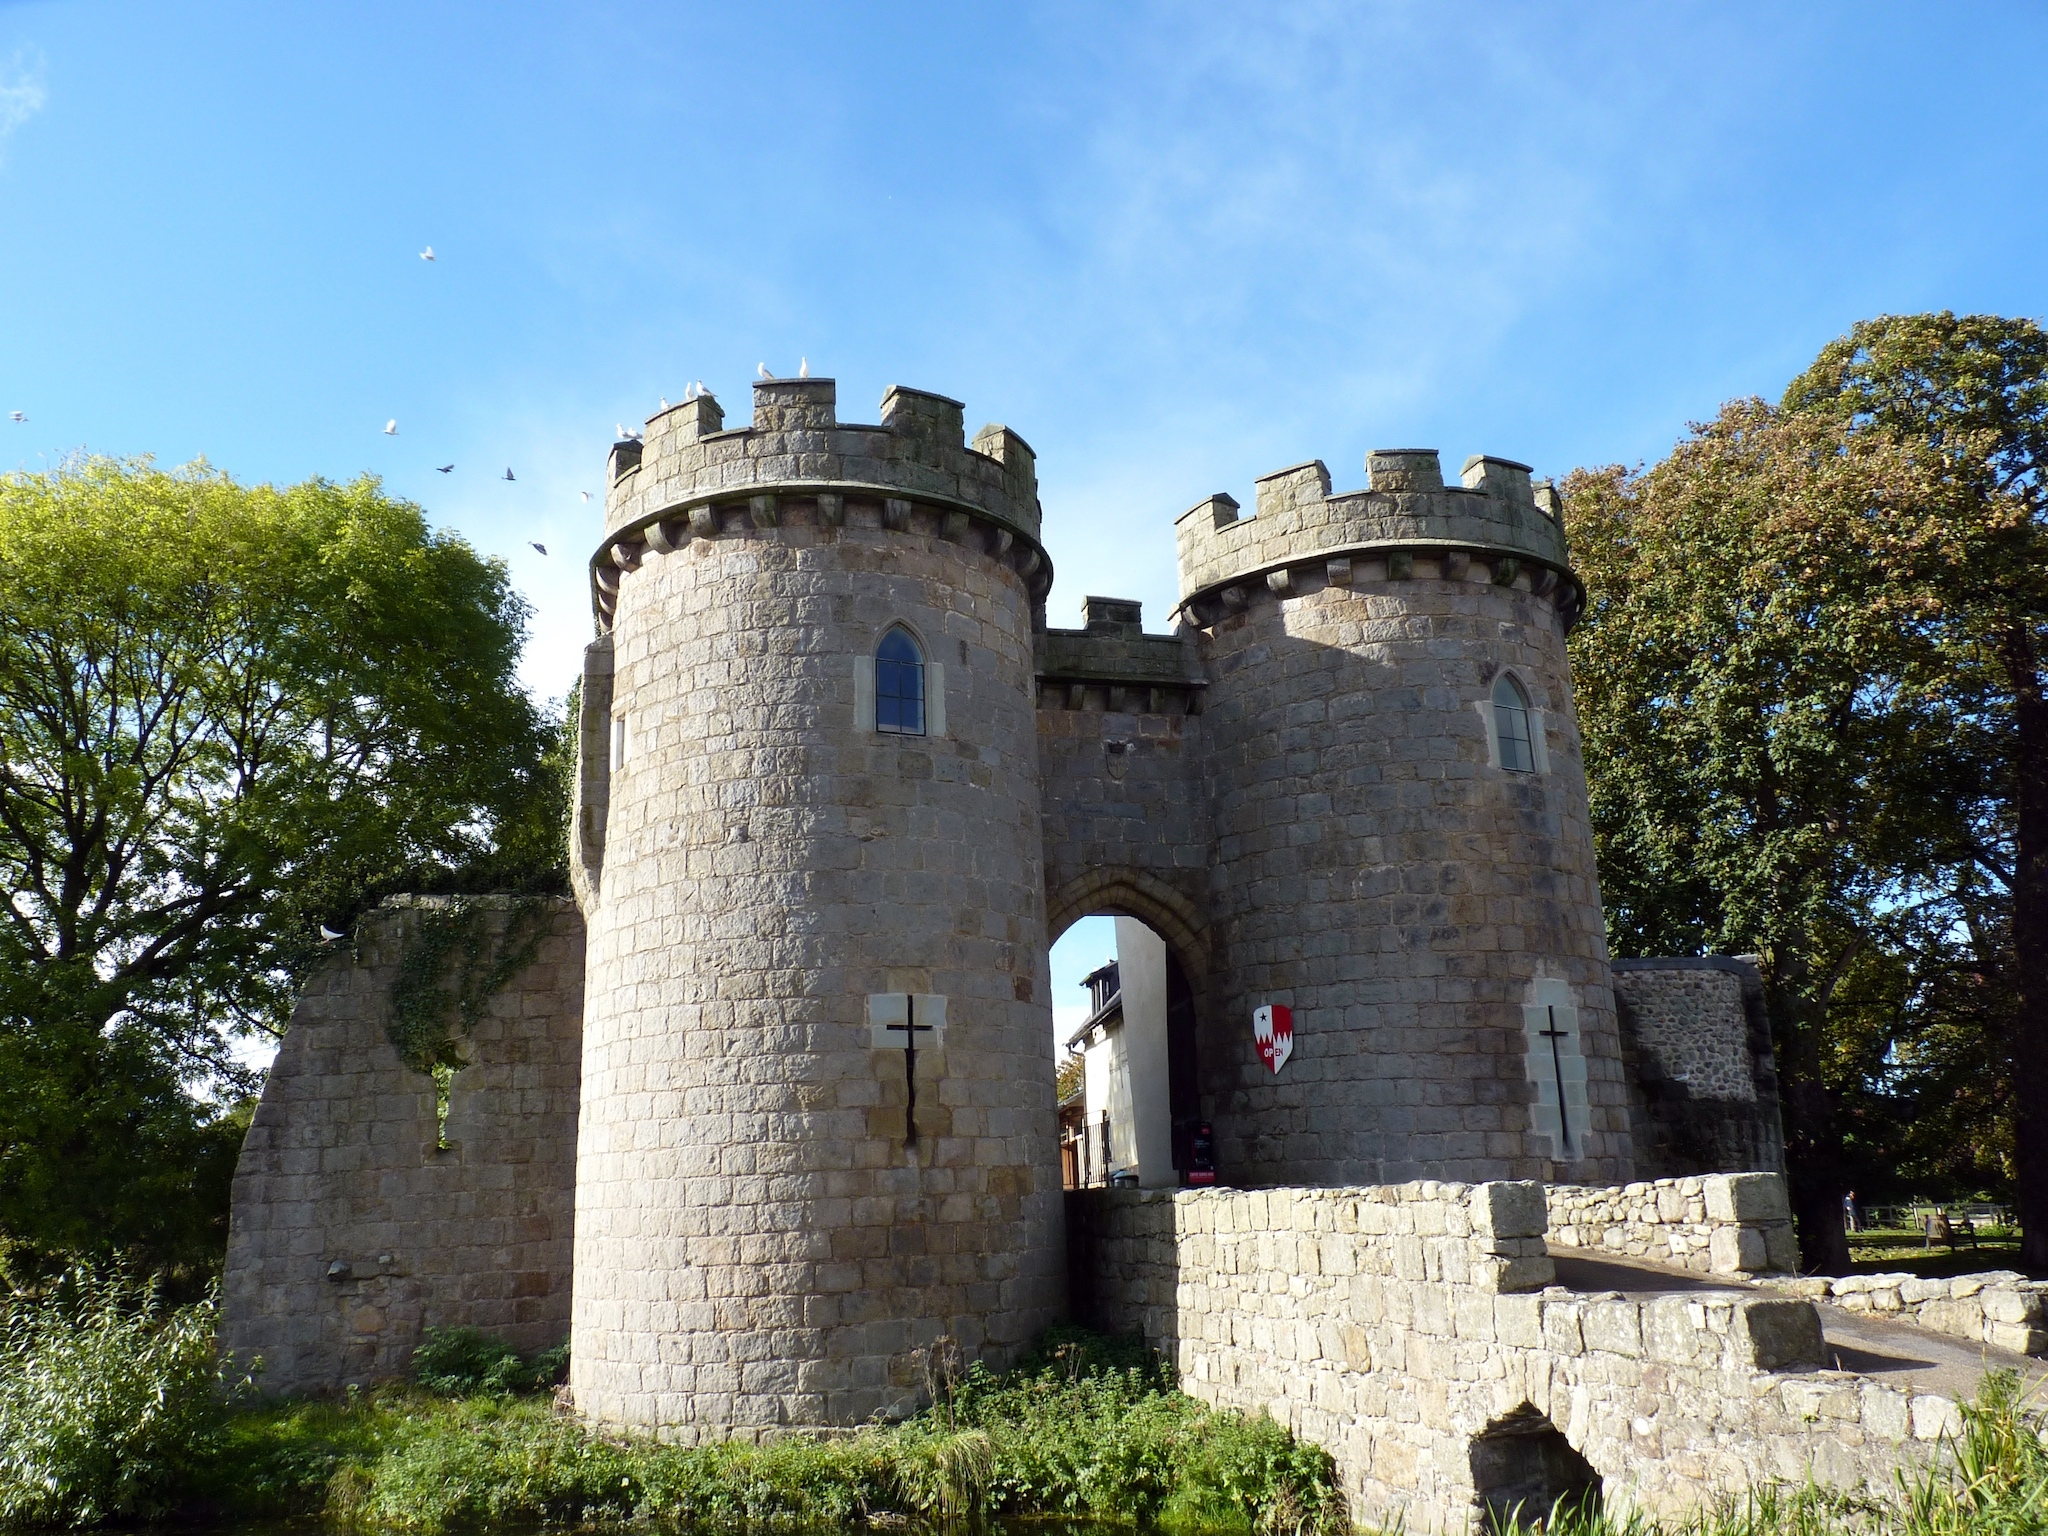 Whittington Castle